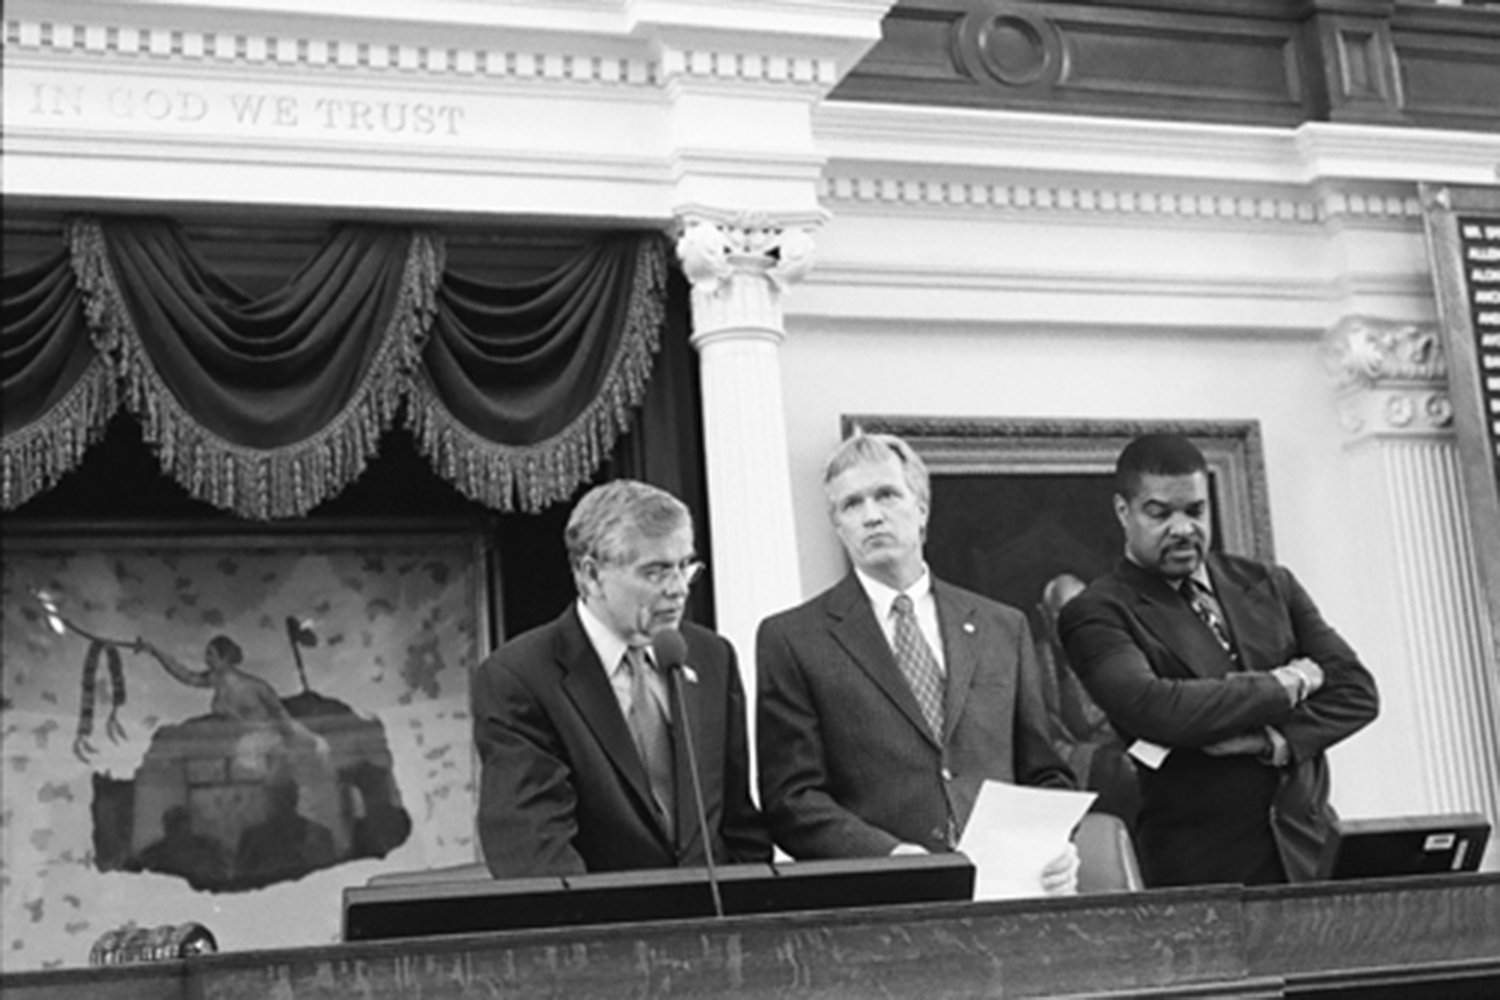 Left to right: House Speaker Tom Craddick with Parliamentarian Terry Keel and Deputy Parliamentarian Ron Wilson on the House dais in 2007.